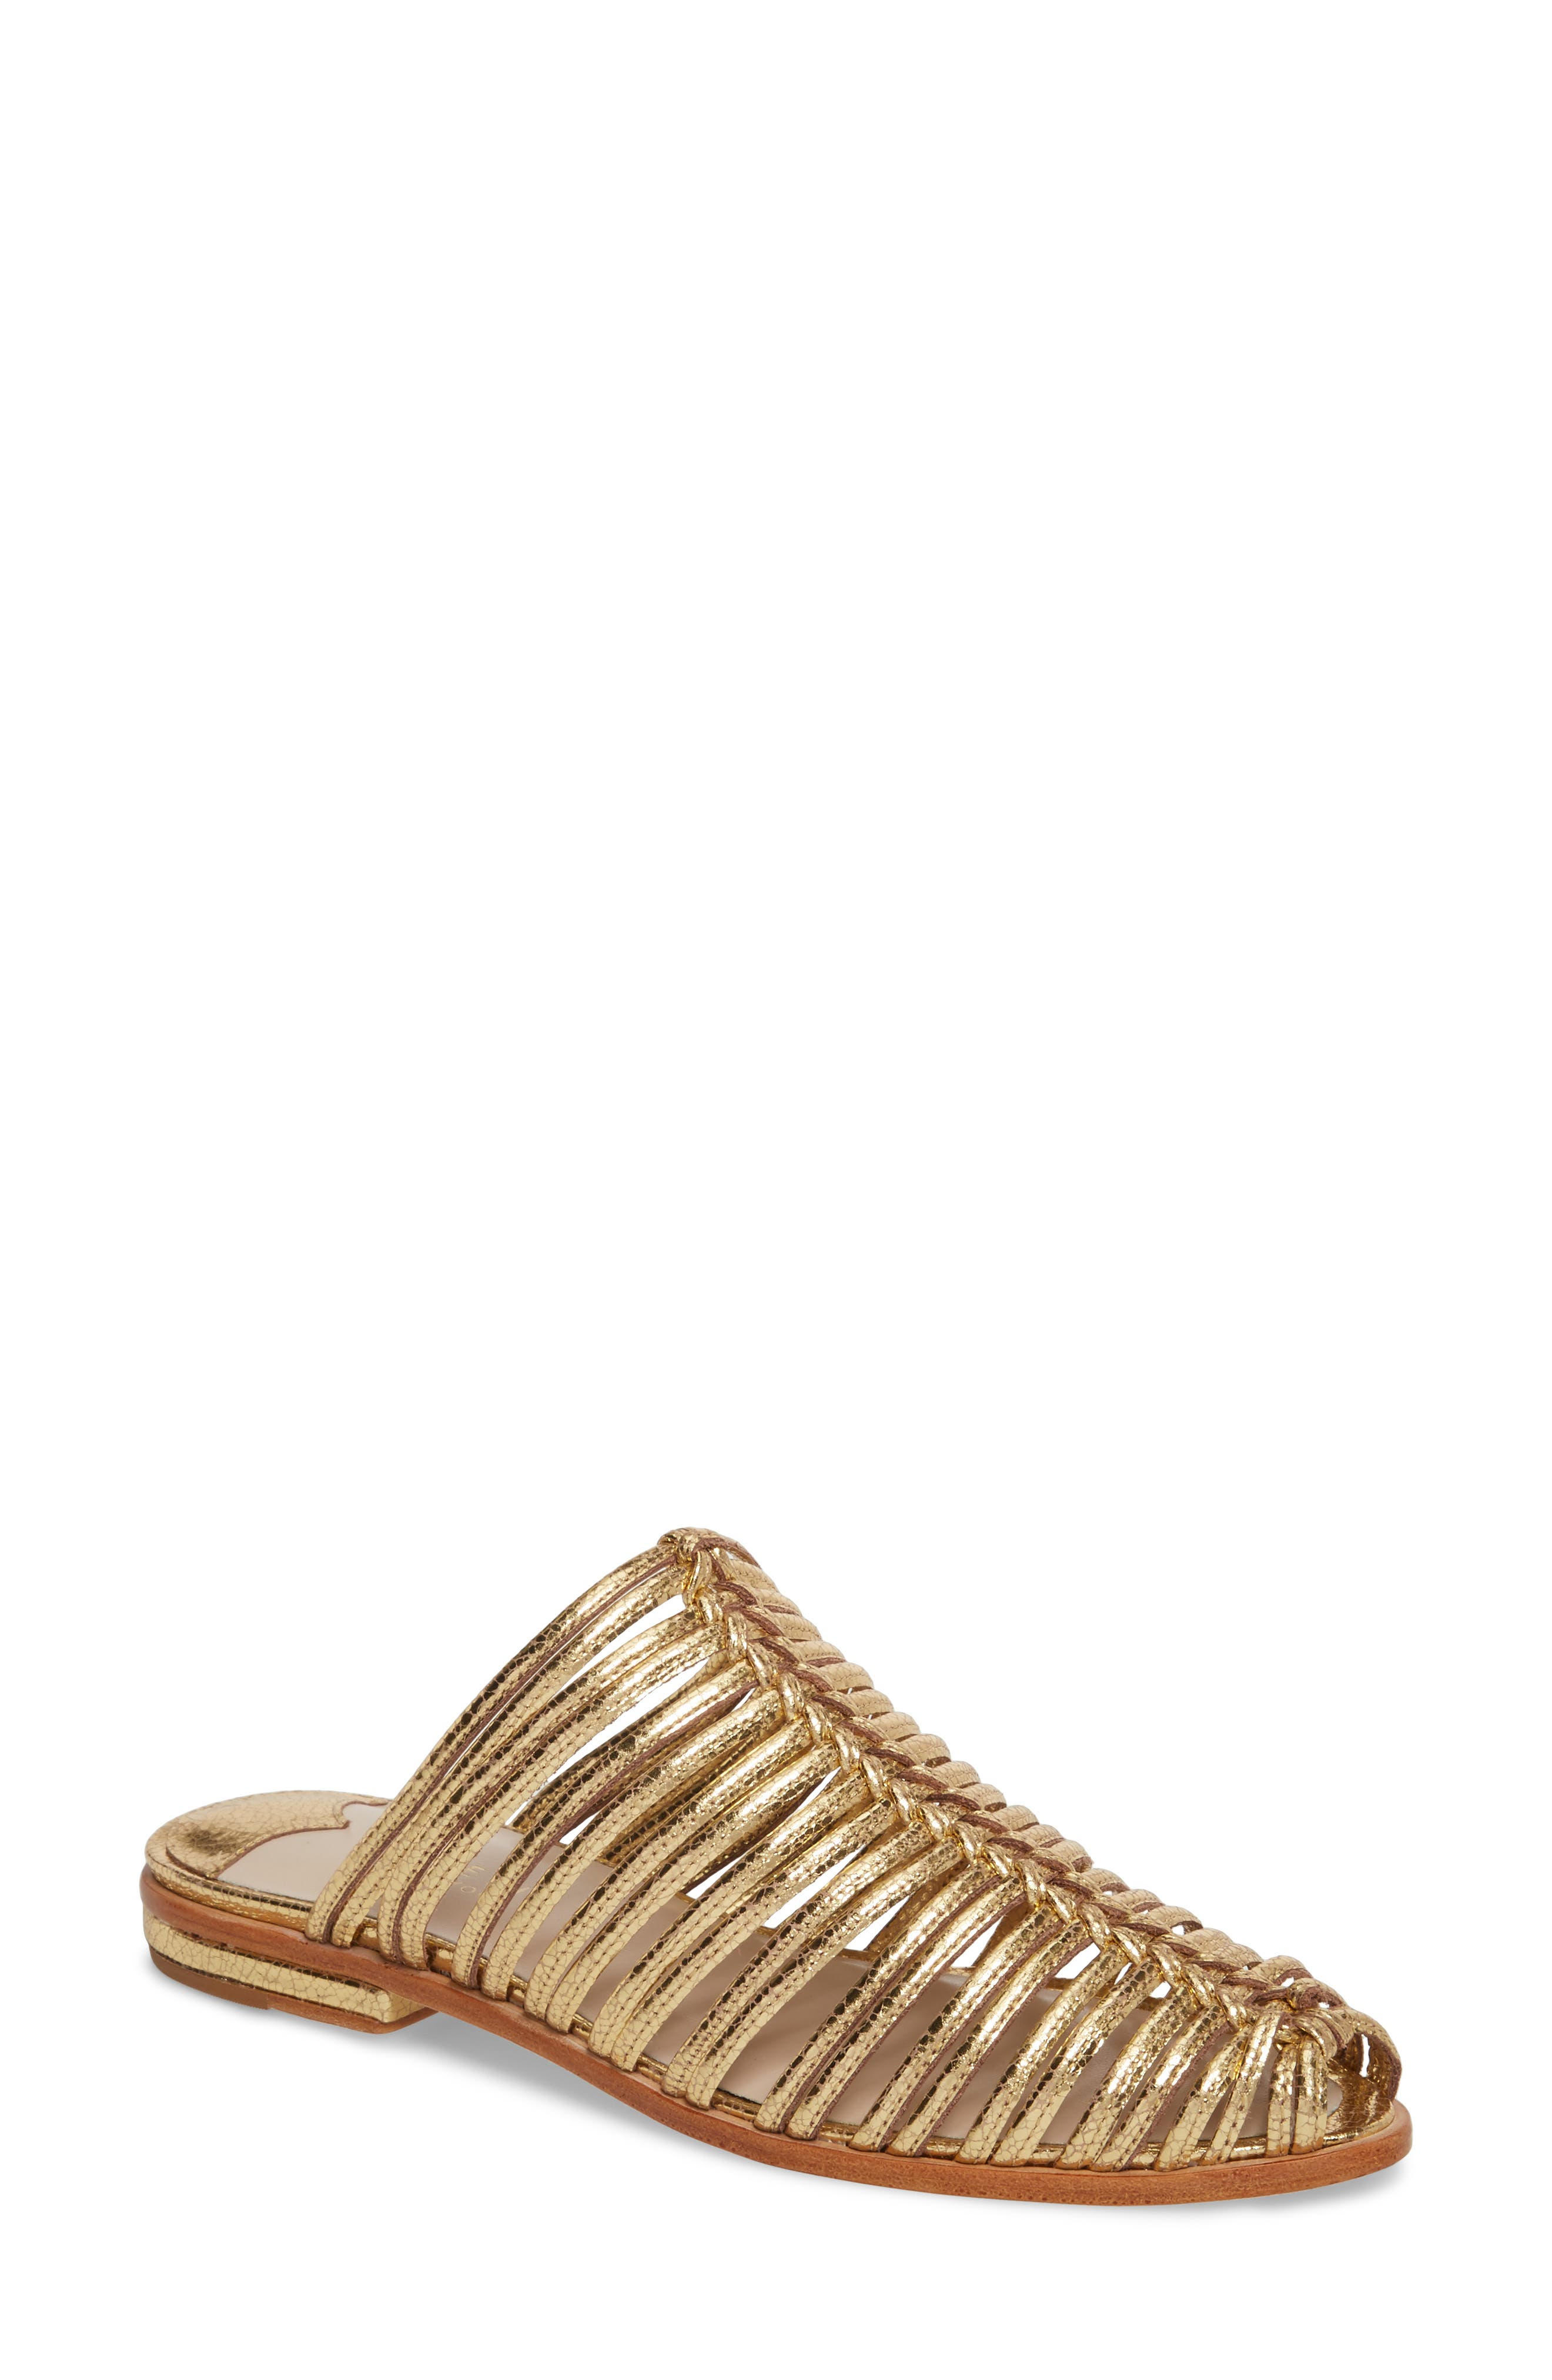 Gloria Sandal,                             Main thumbnail 1, color,                             GOLD LEATHER